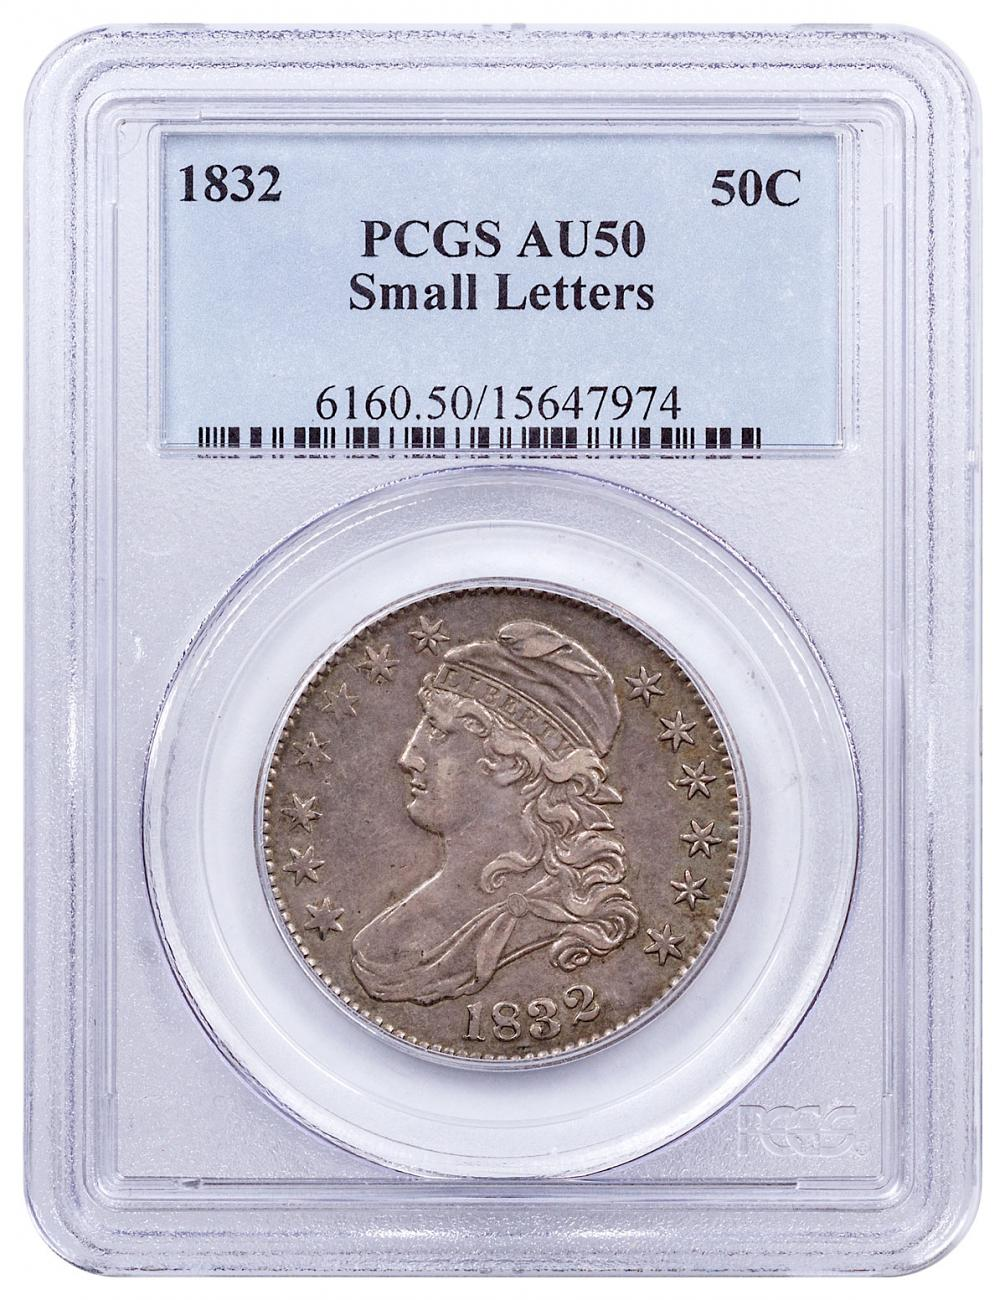 1832 Silver Capped Bust Half Dollar Small Letters PCGS AU50